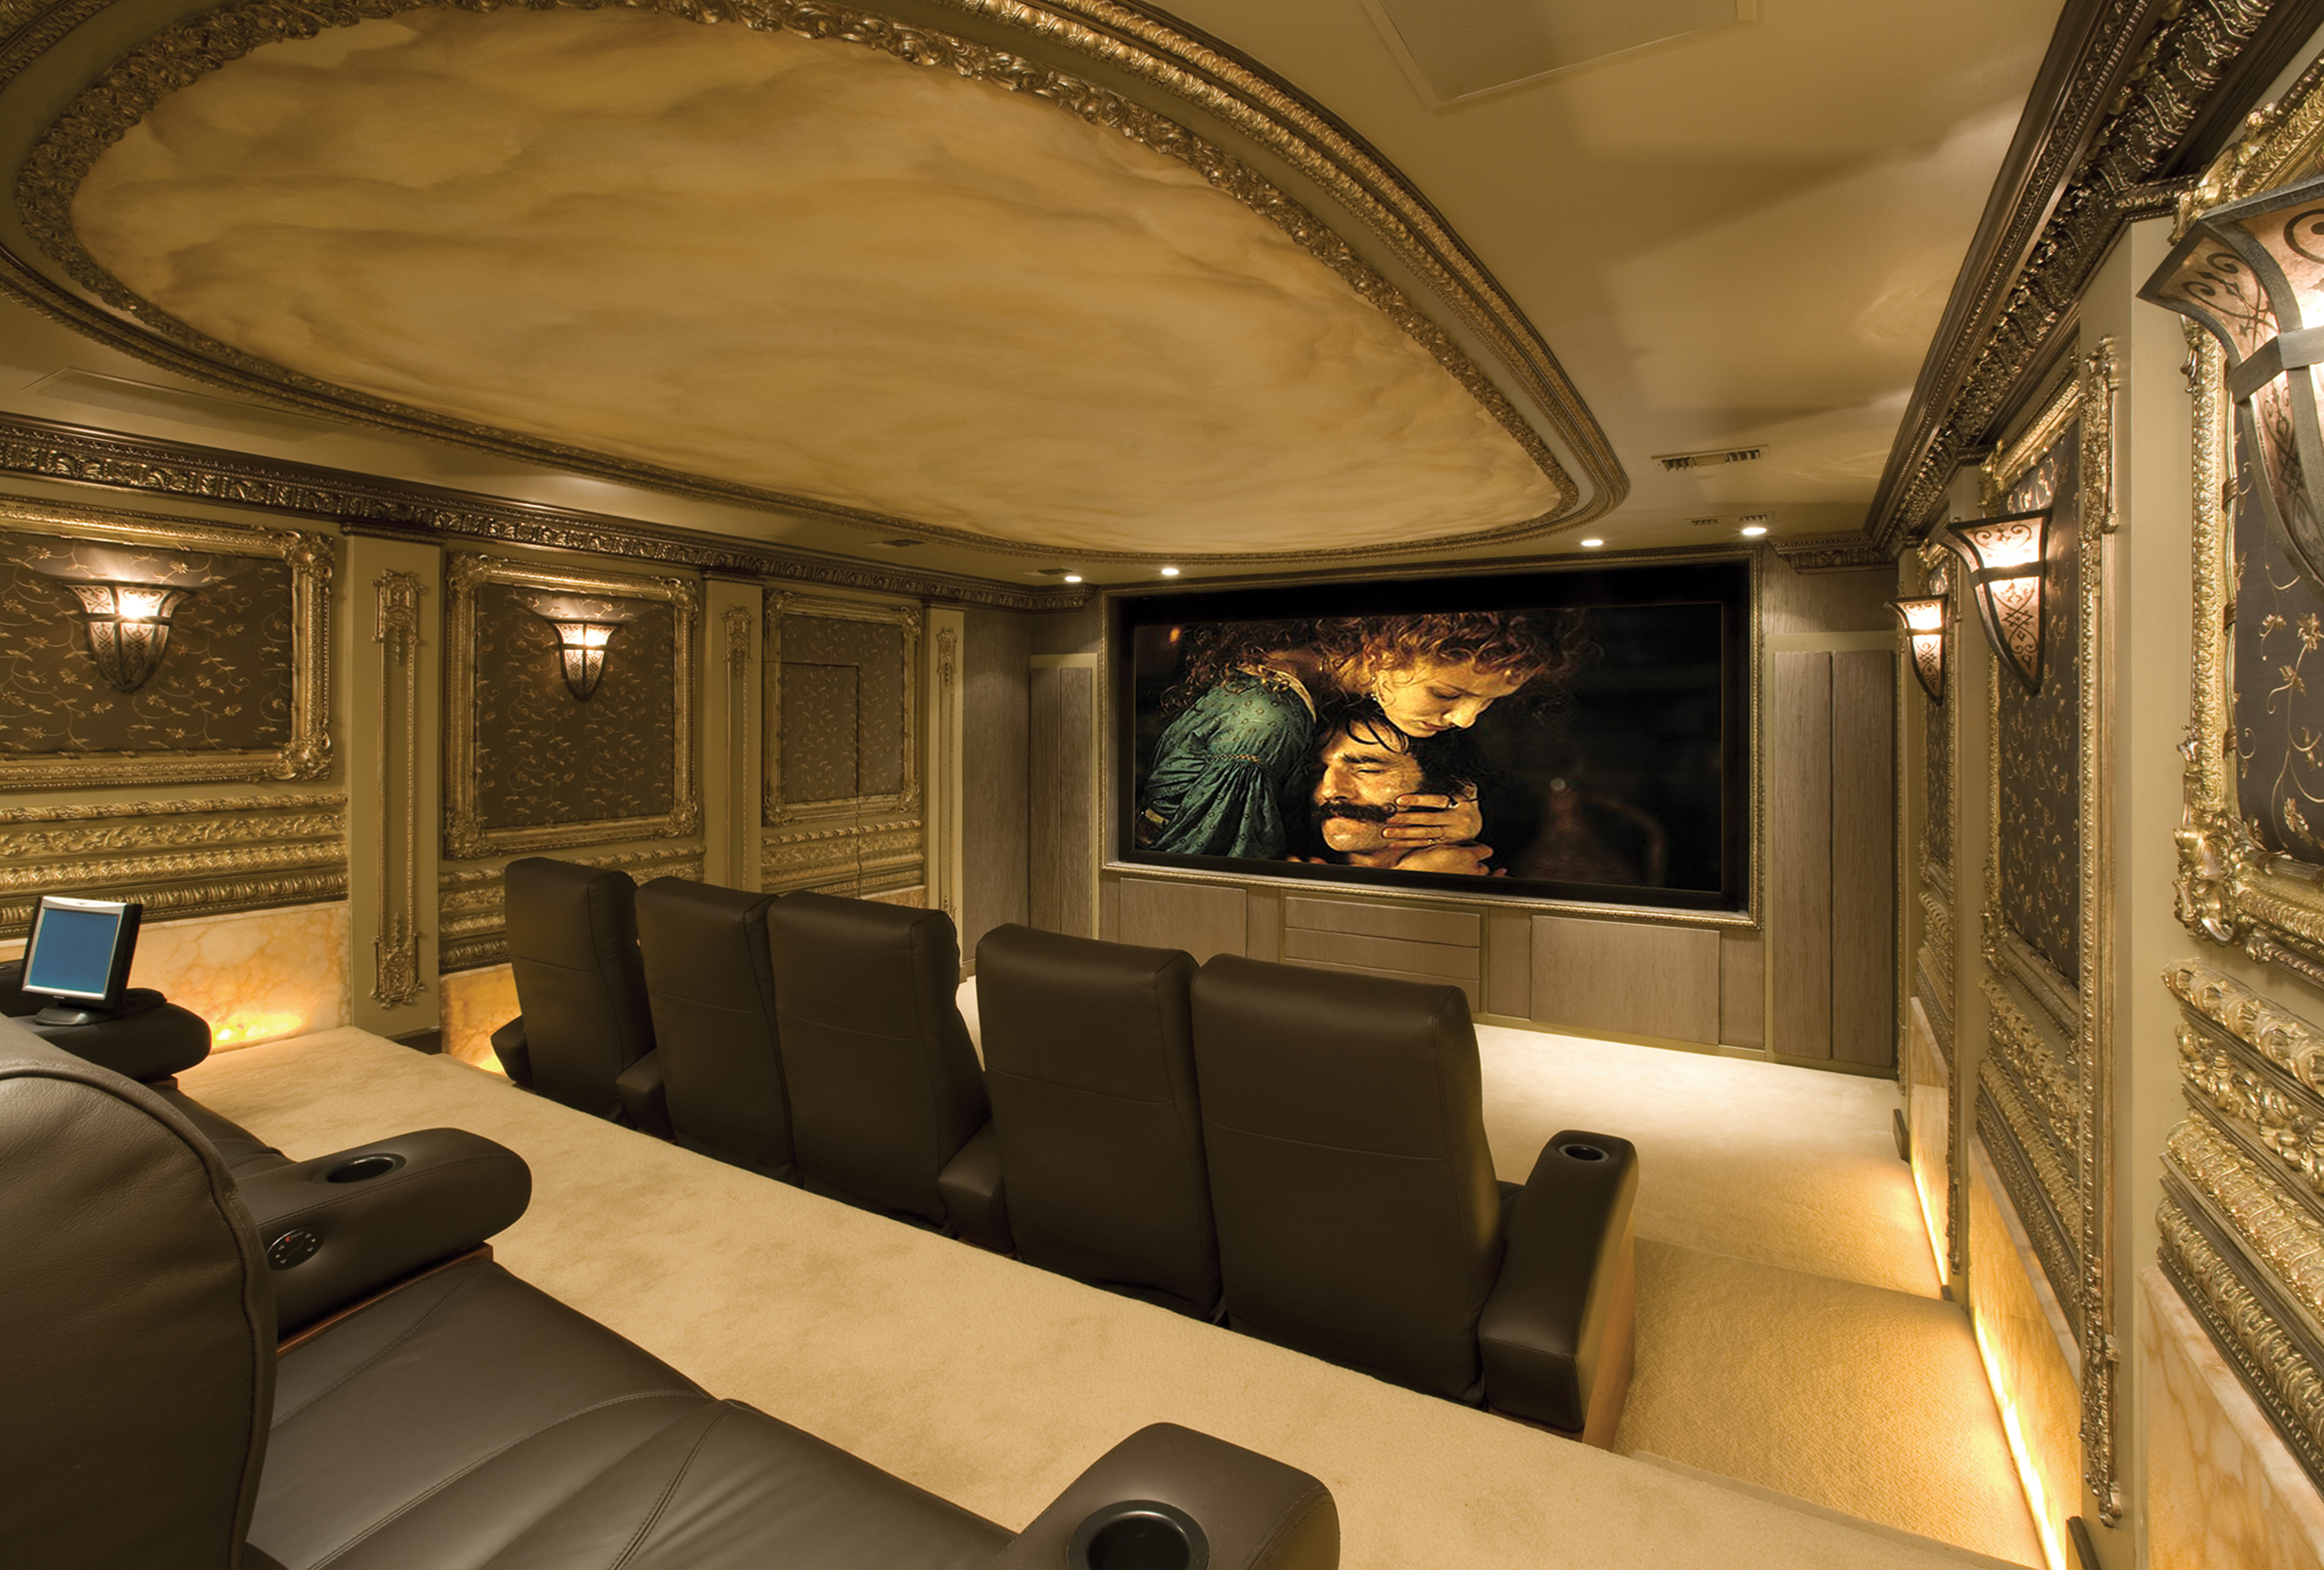 Best Kitchen Gallery: Custom Home Theaters Winslow Design Group of Home Theater Room Carpet on rachelxblog.com